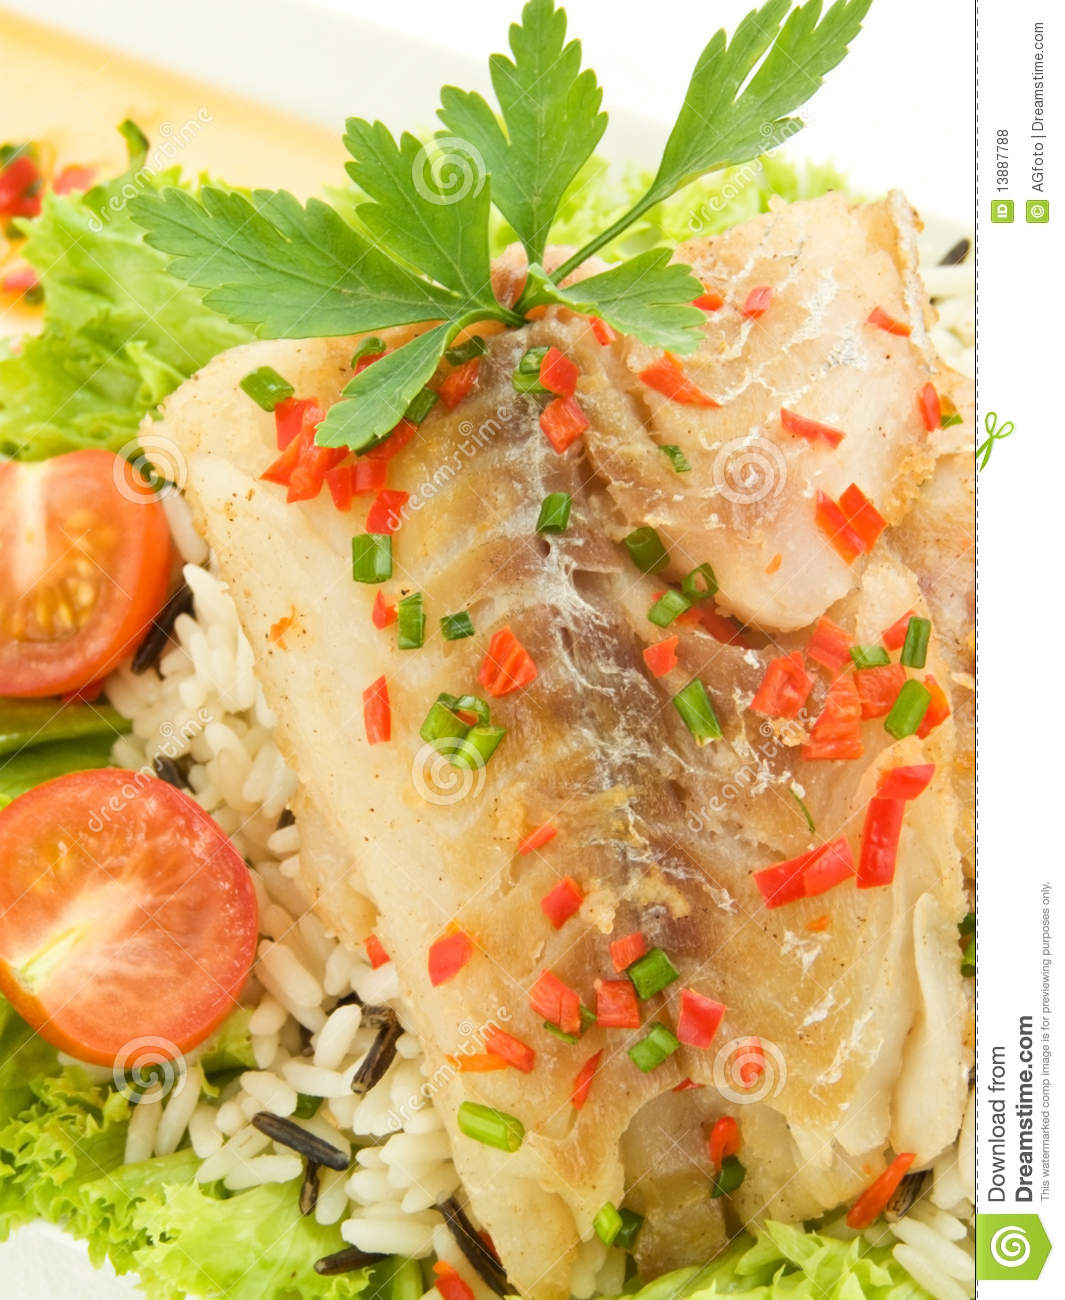 Garnishes For Dinner Plates http://www.dreamstime.com/royalty-free-stock-photos-dinner-image13887788